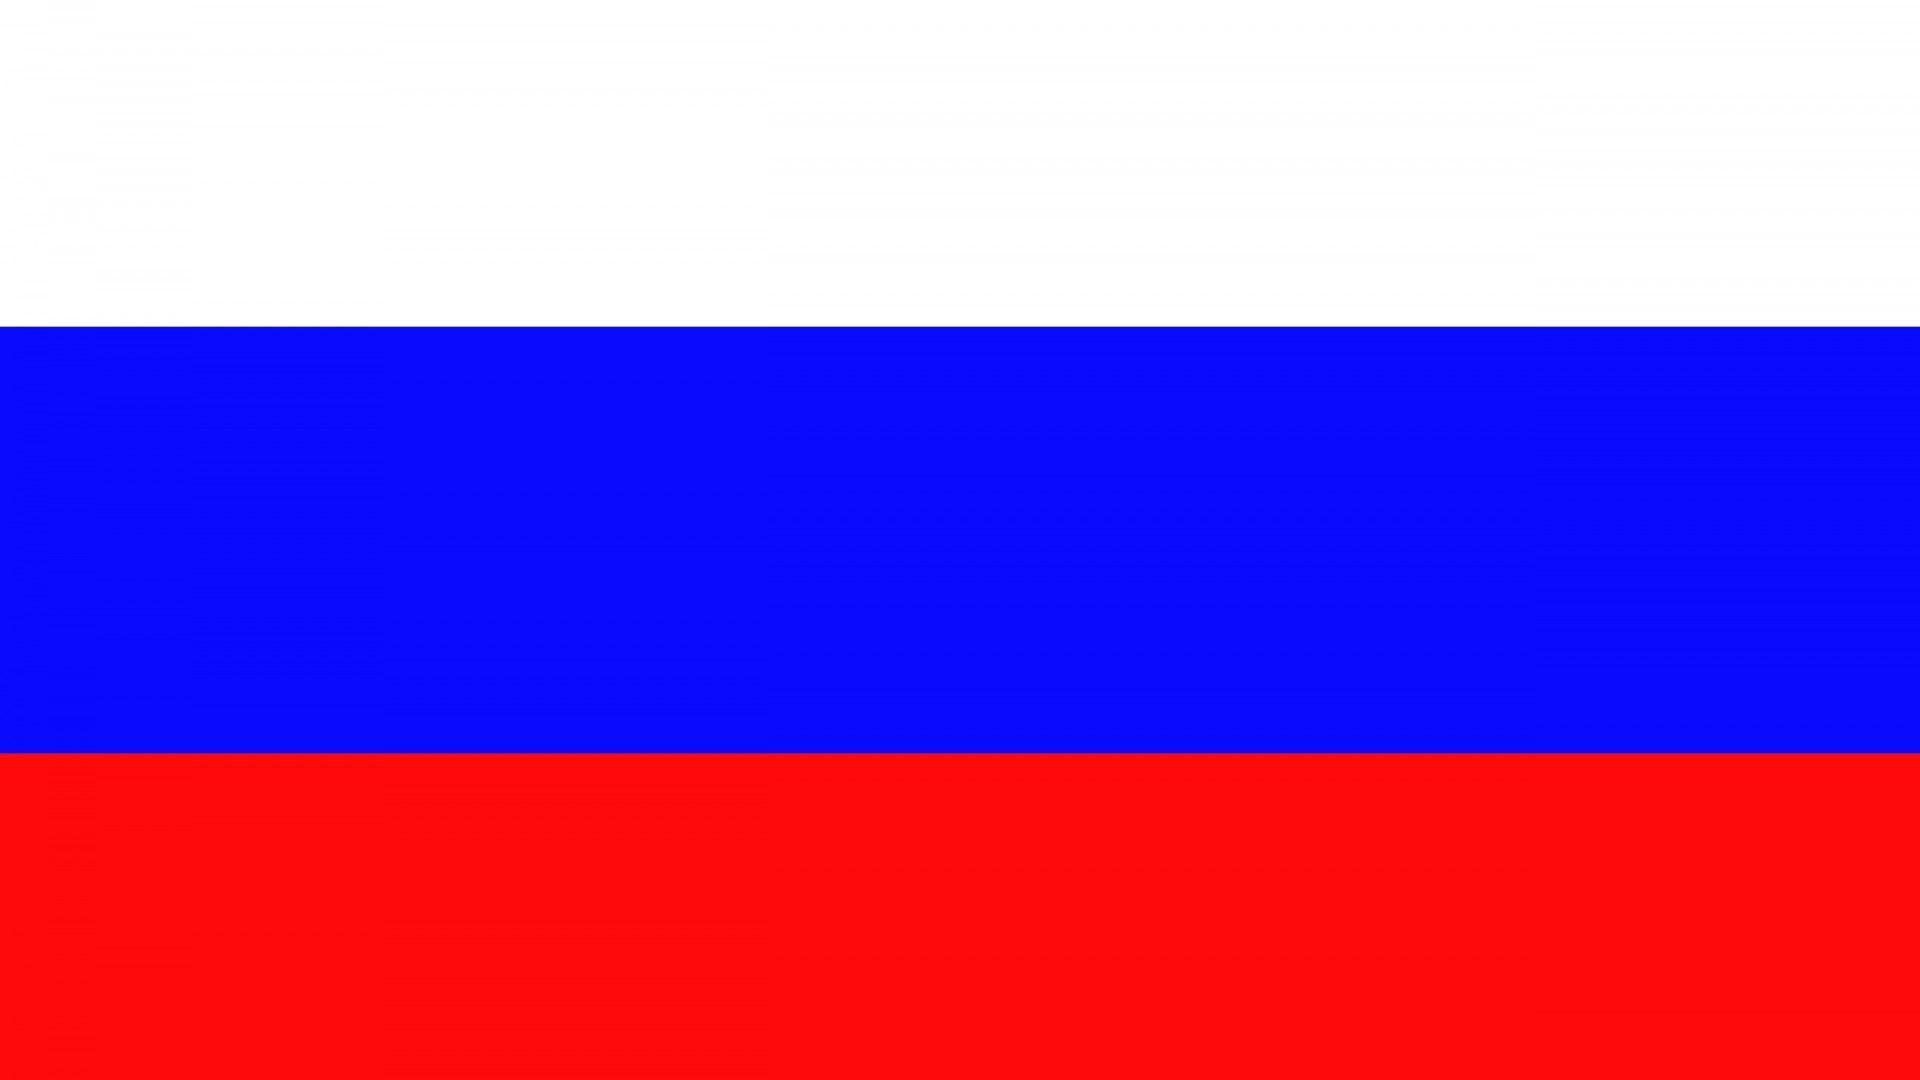 Images: Russian flag